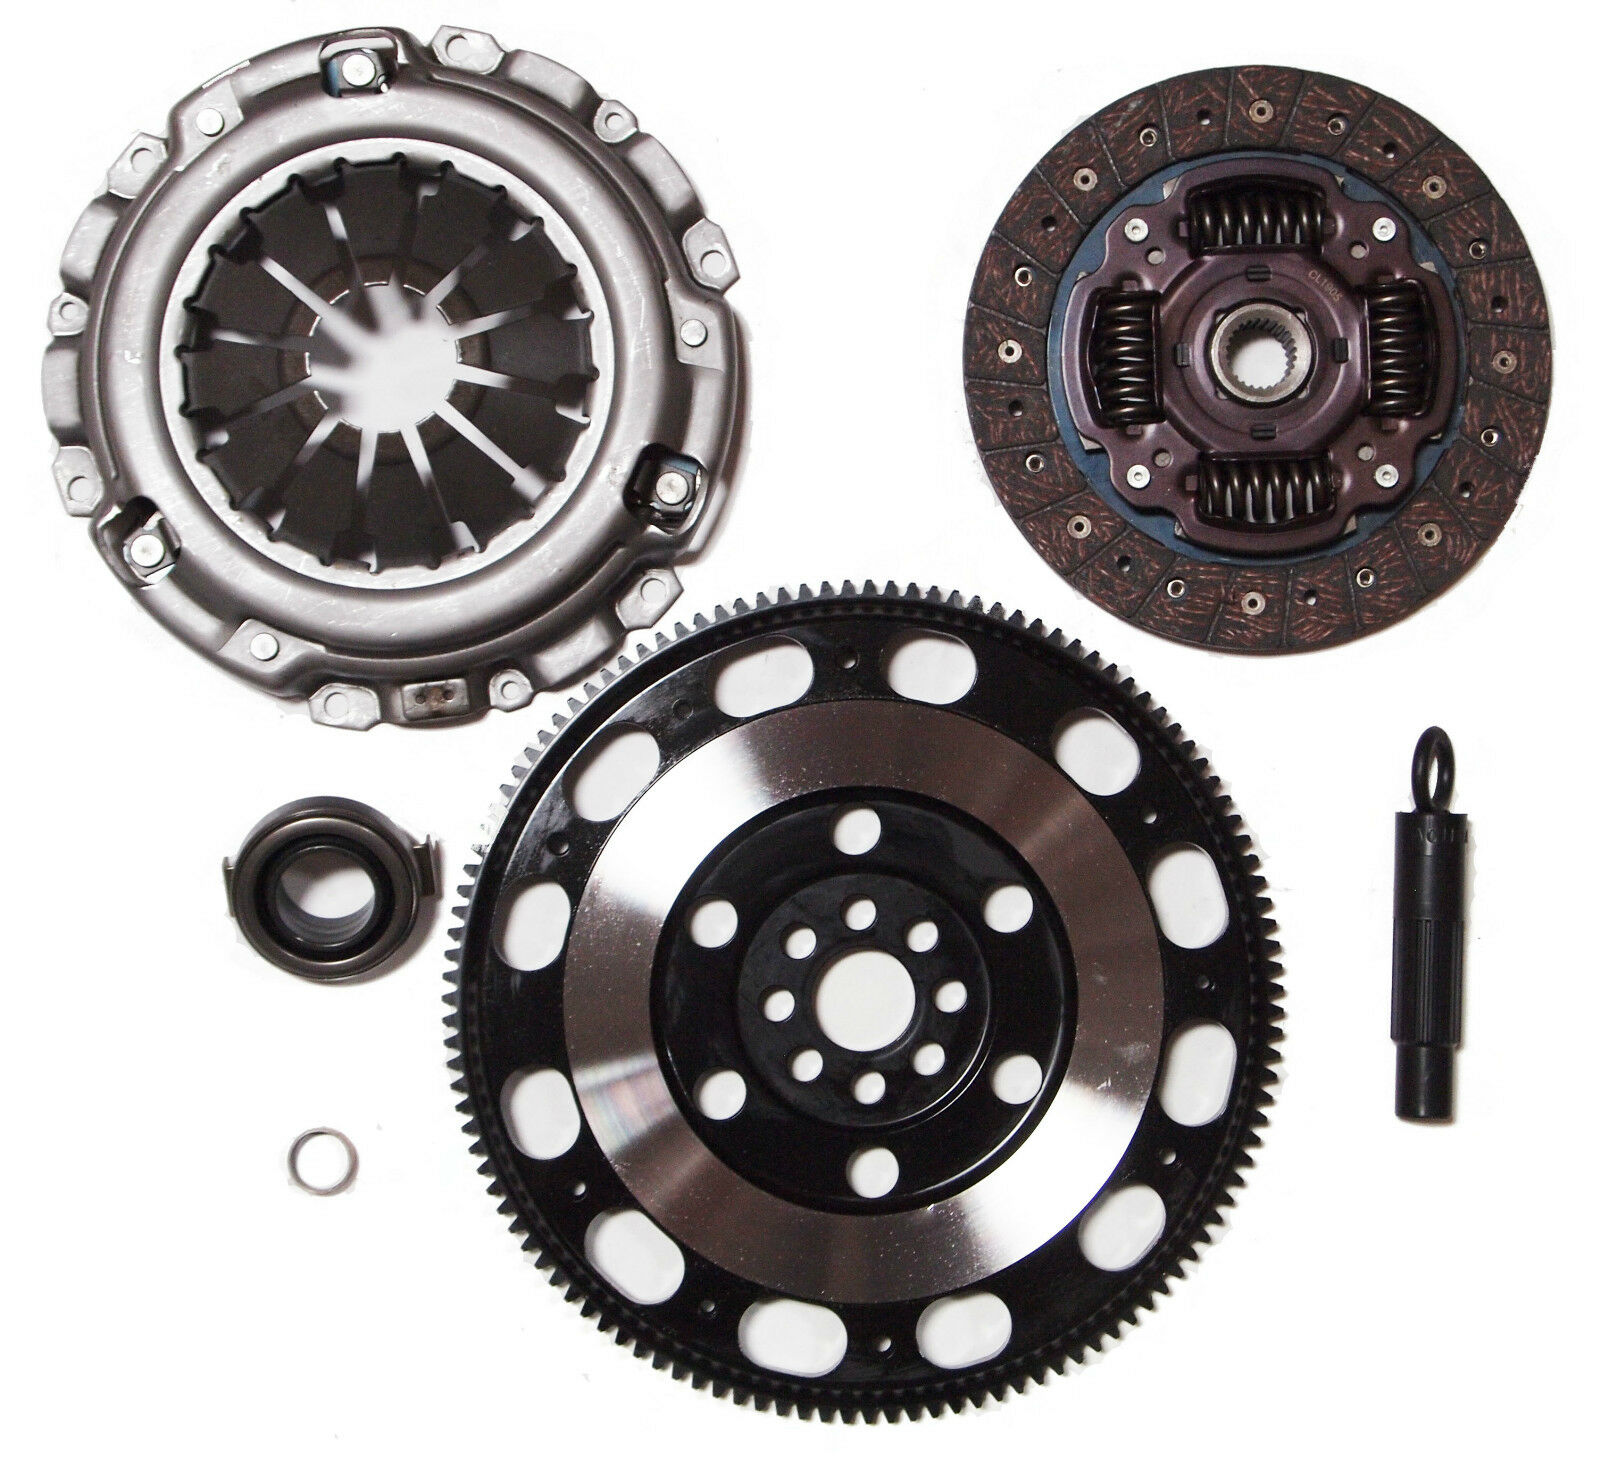 QSC Stage 1 Clutch & Chromoly Flywheel Kit For ACURA RSX